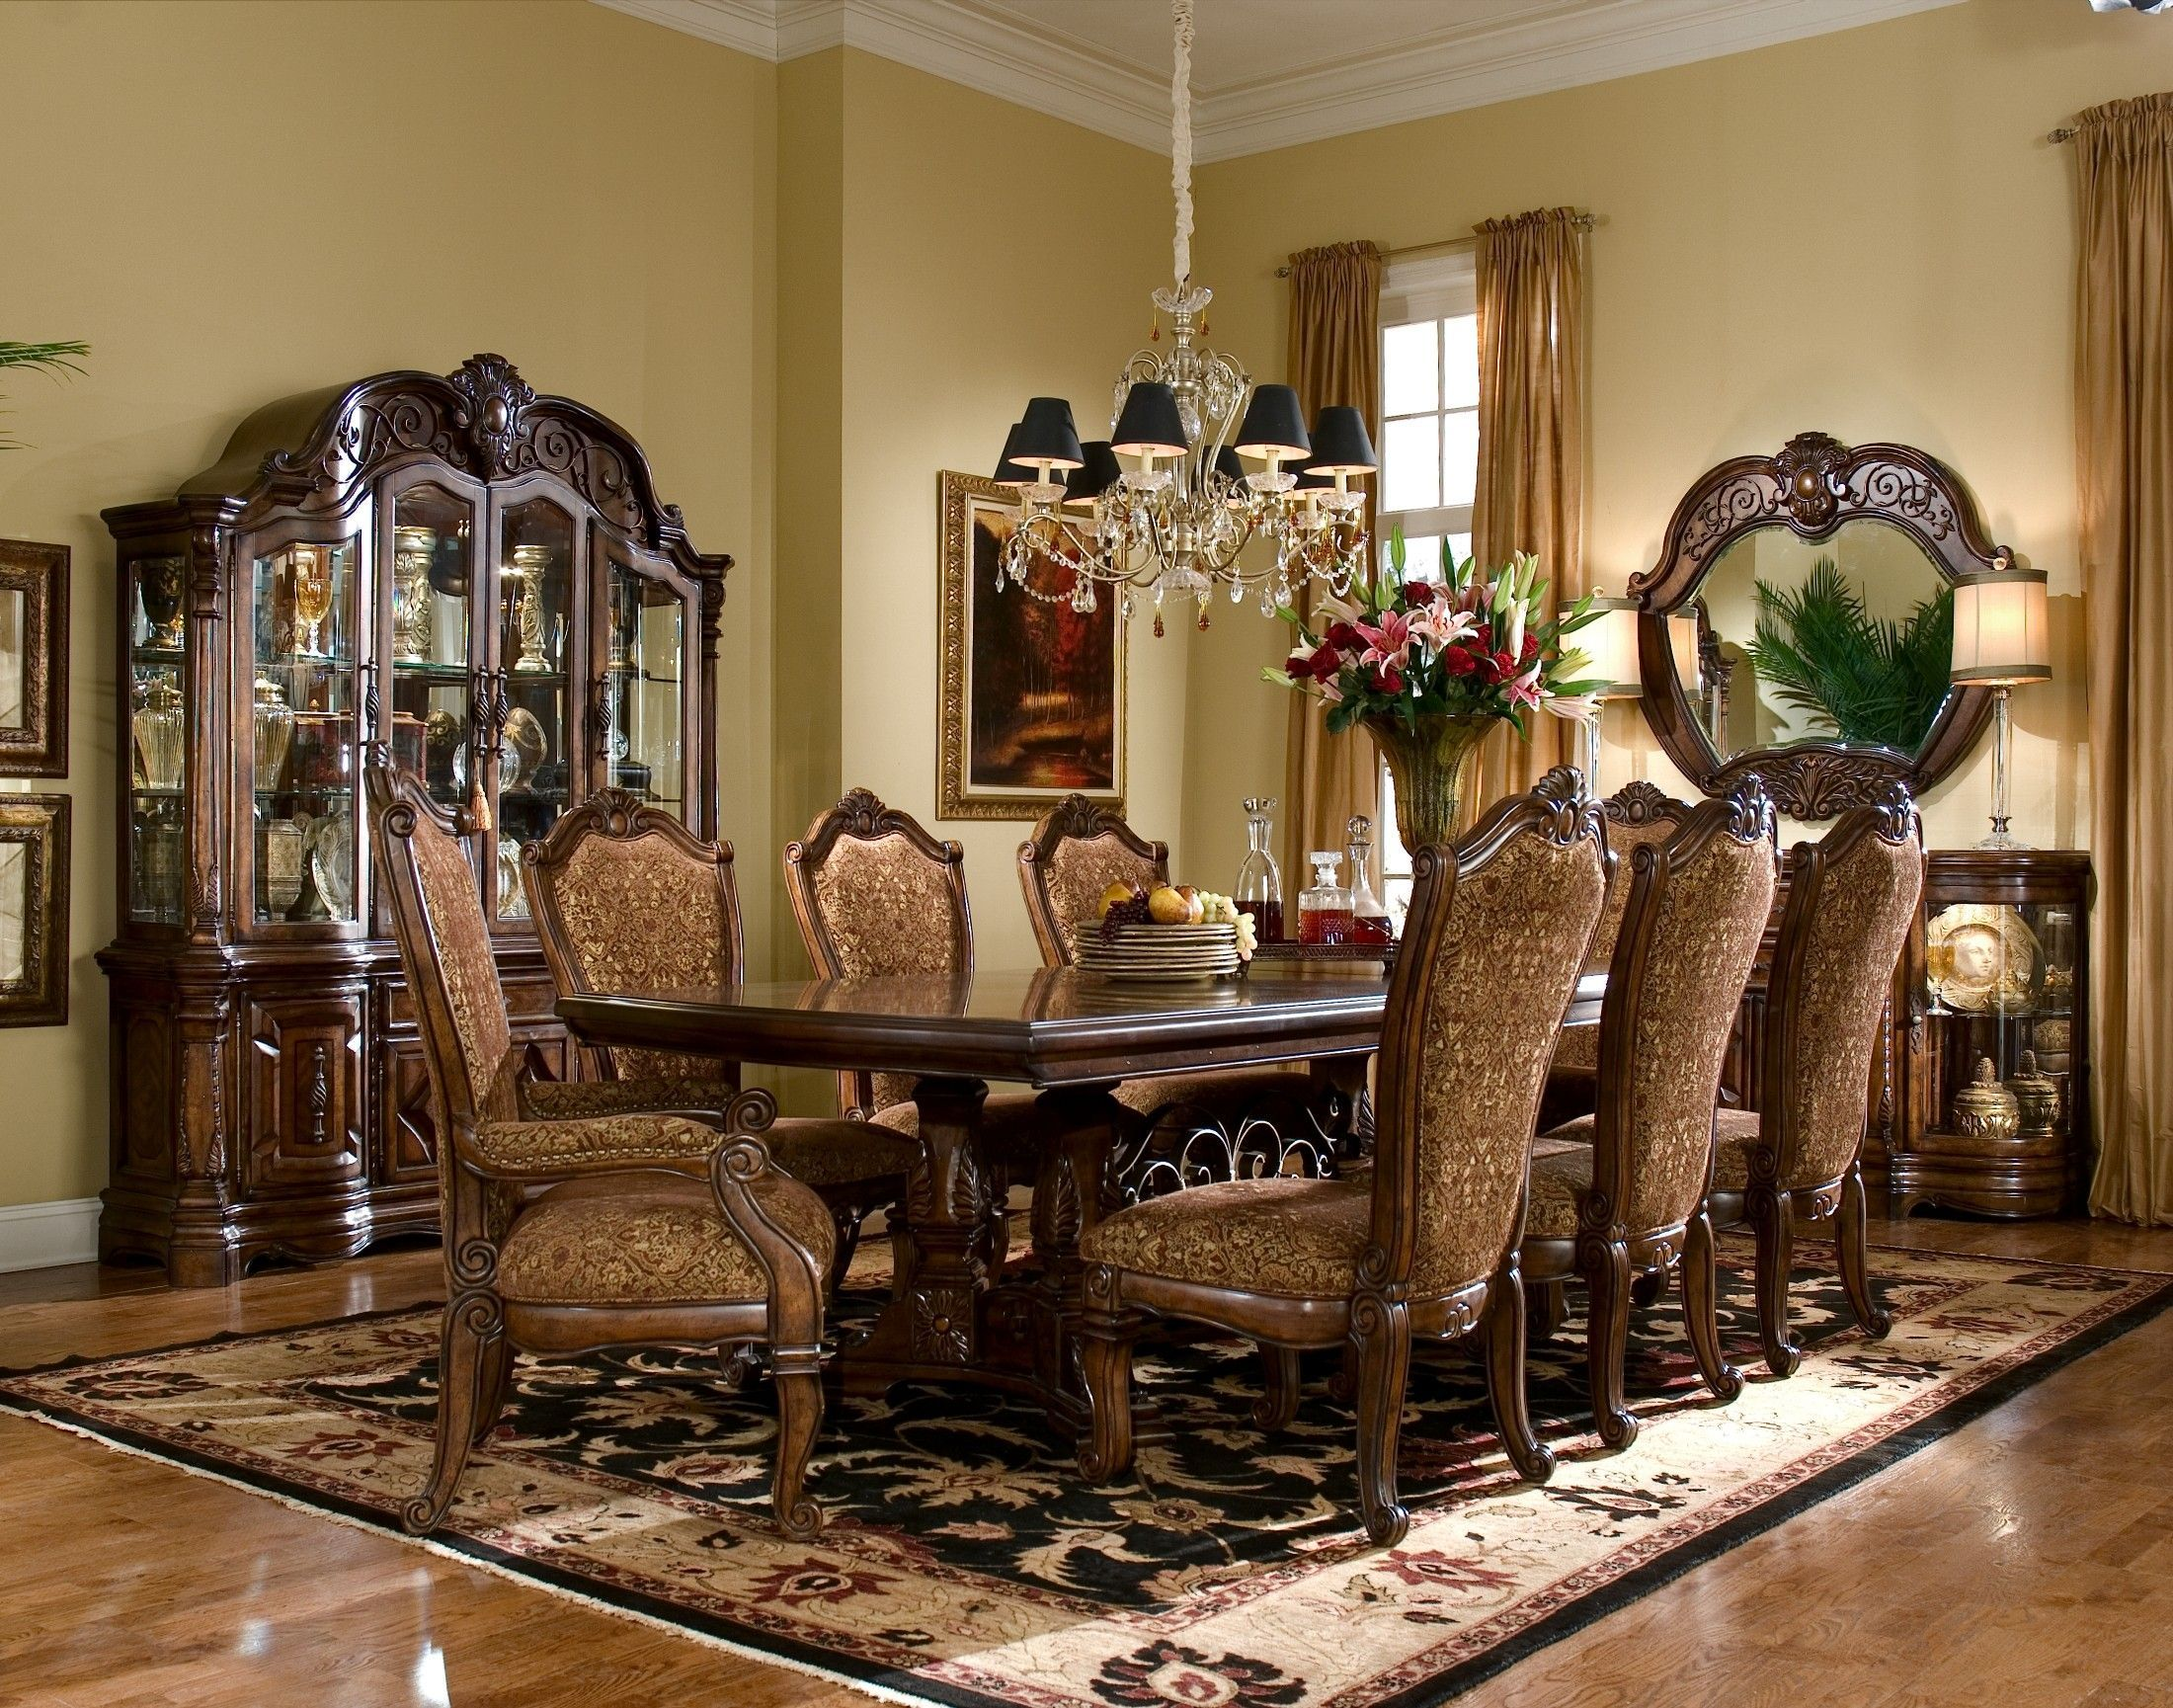 Dining Room Sets, Dining Room Chairs, Dining Room Tables, Dining